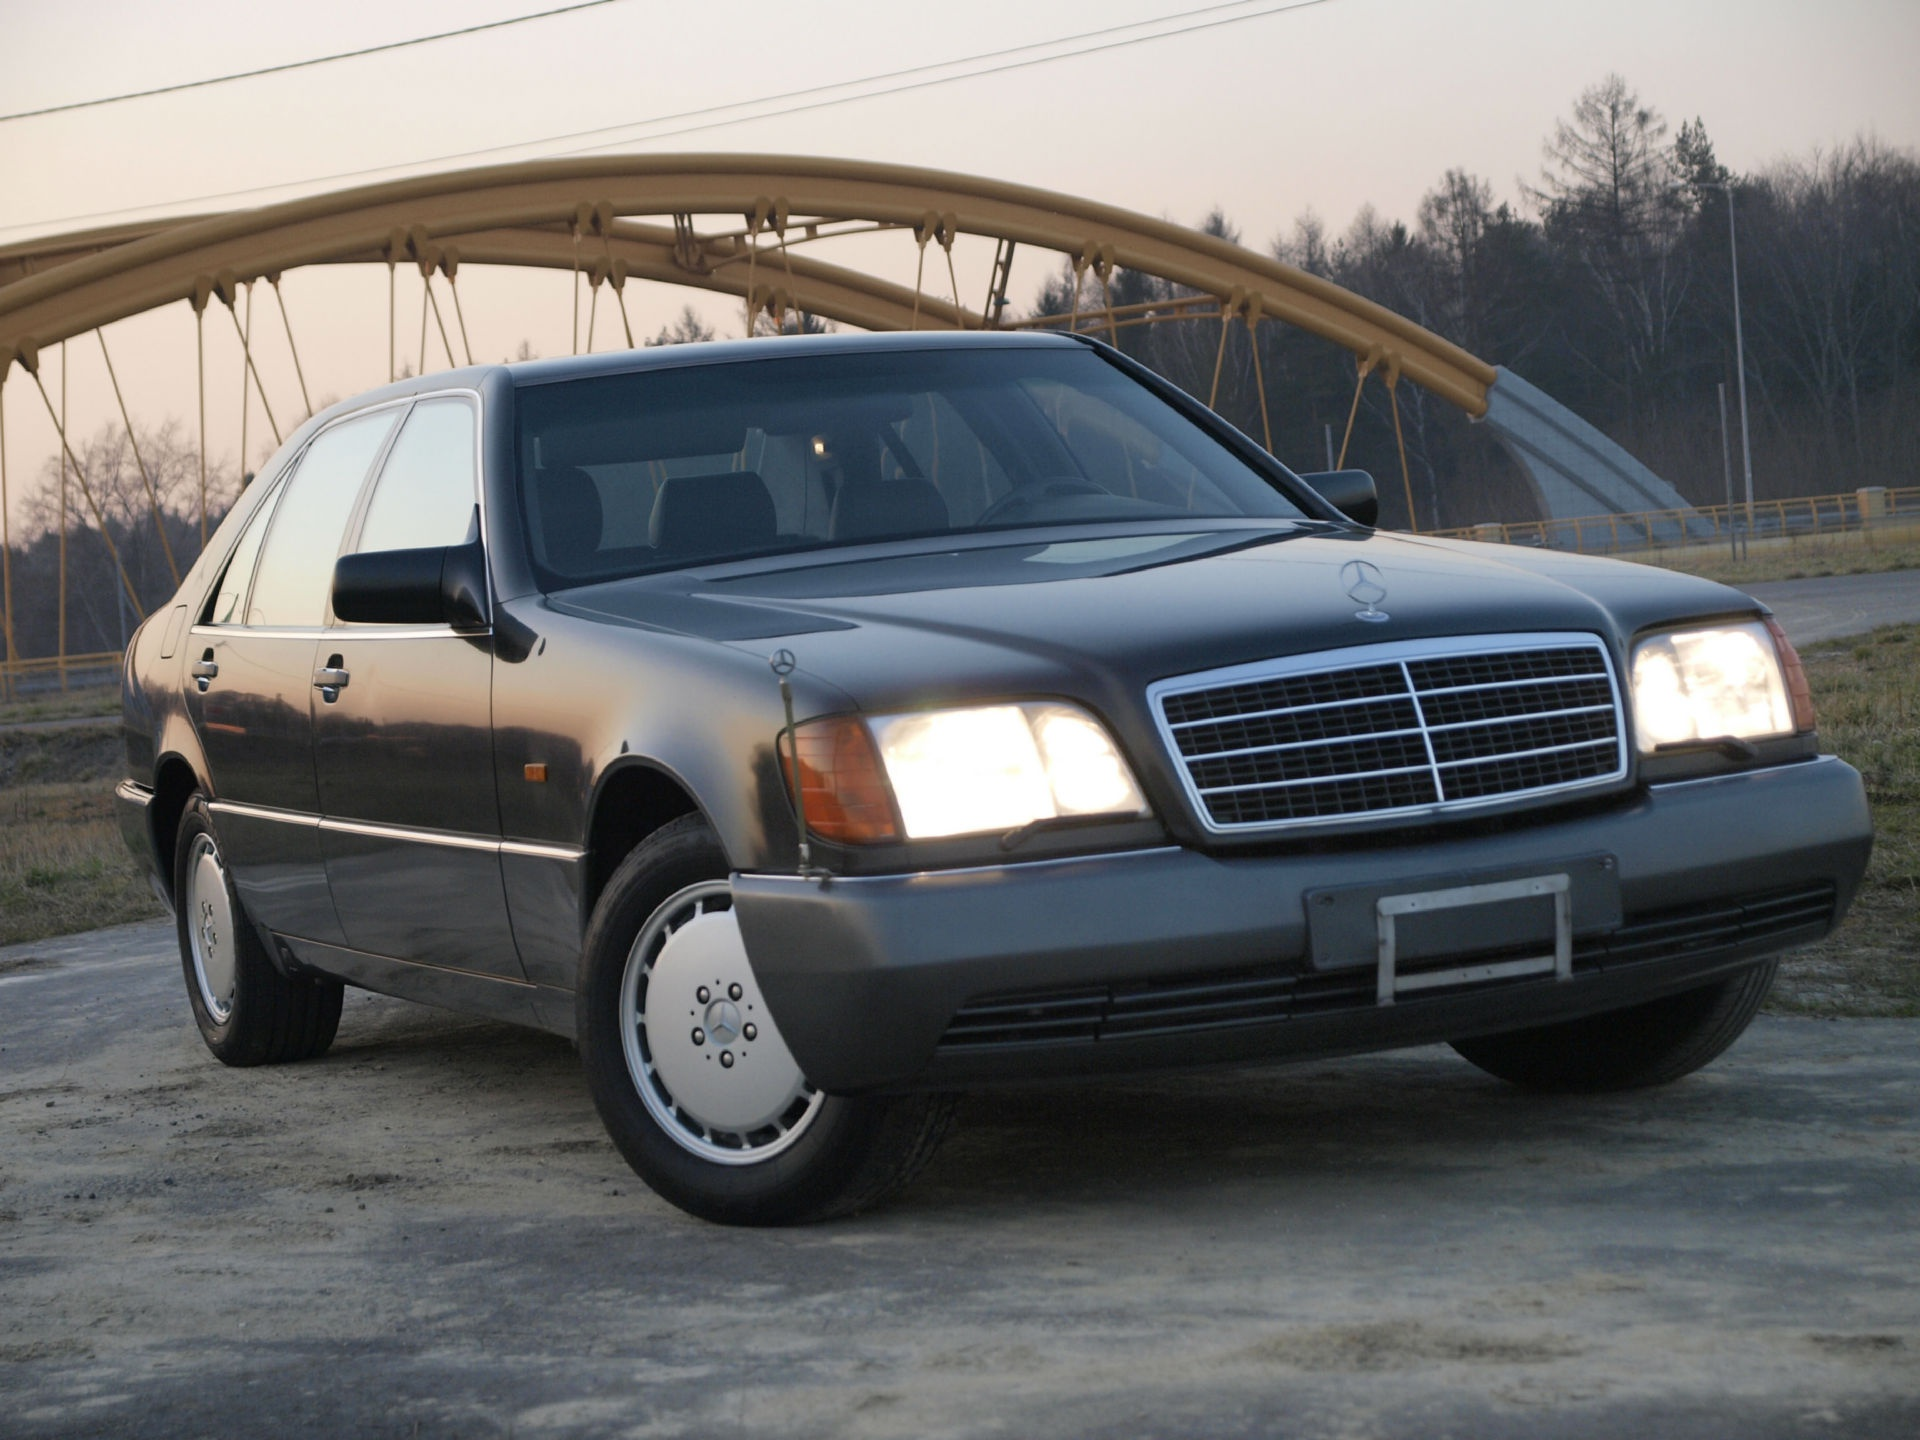 91 mercedes benz 500 sel nowex cars for 91 mercedes benz